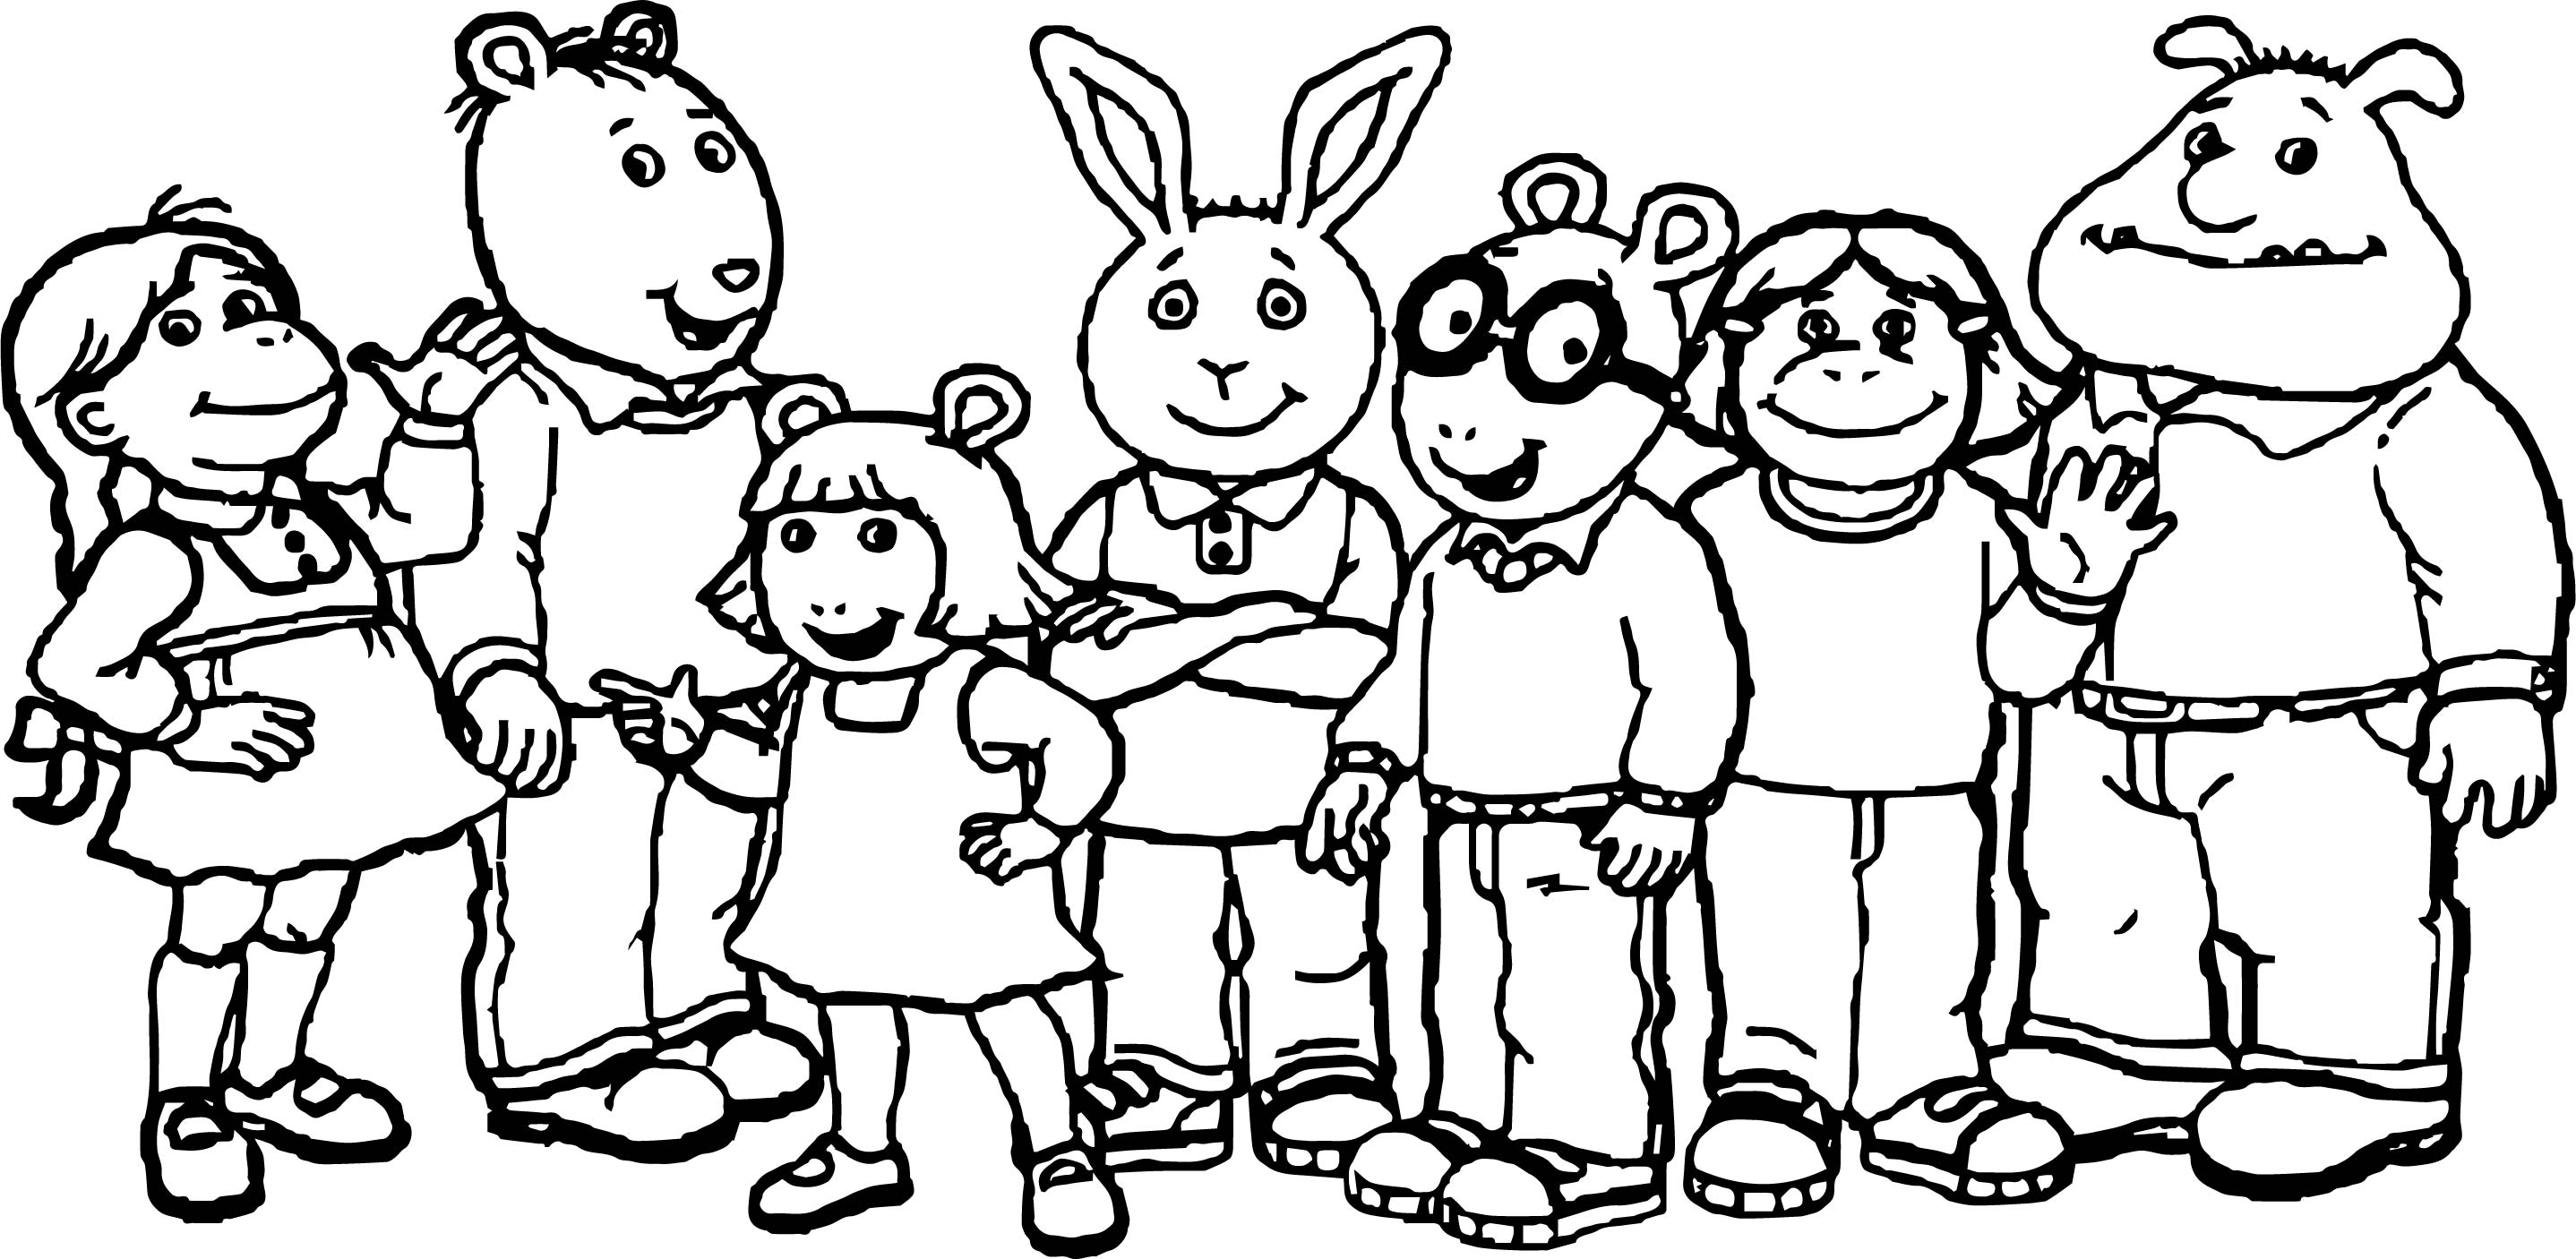 arthur coloring pages arthur coloring pages printable kids activity sheet free coloring arthur pages